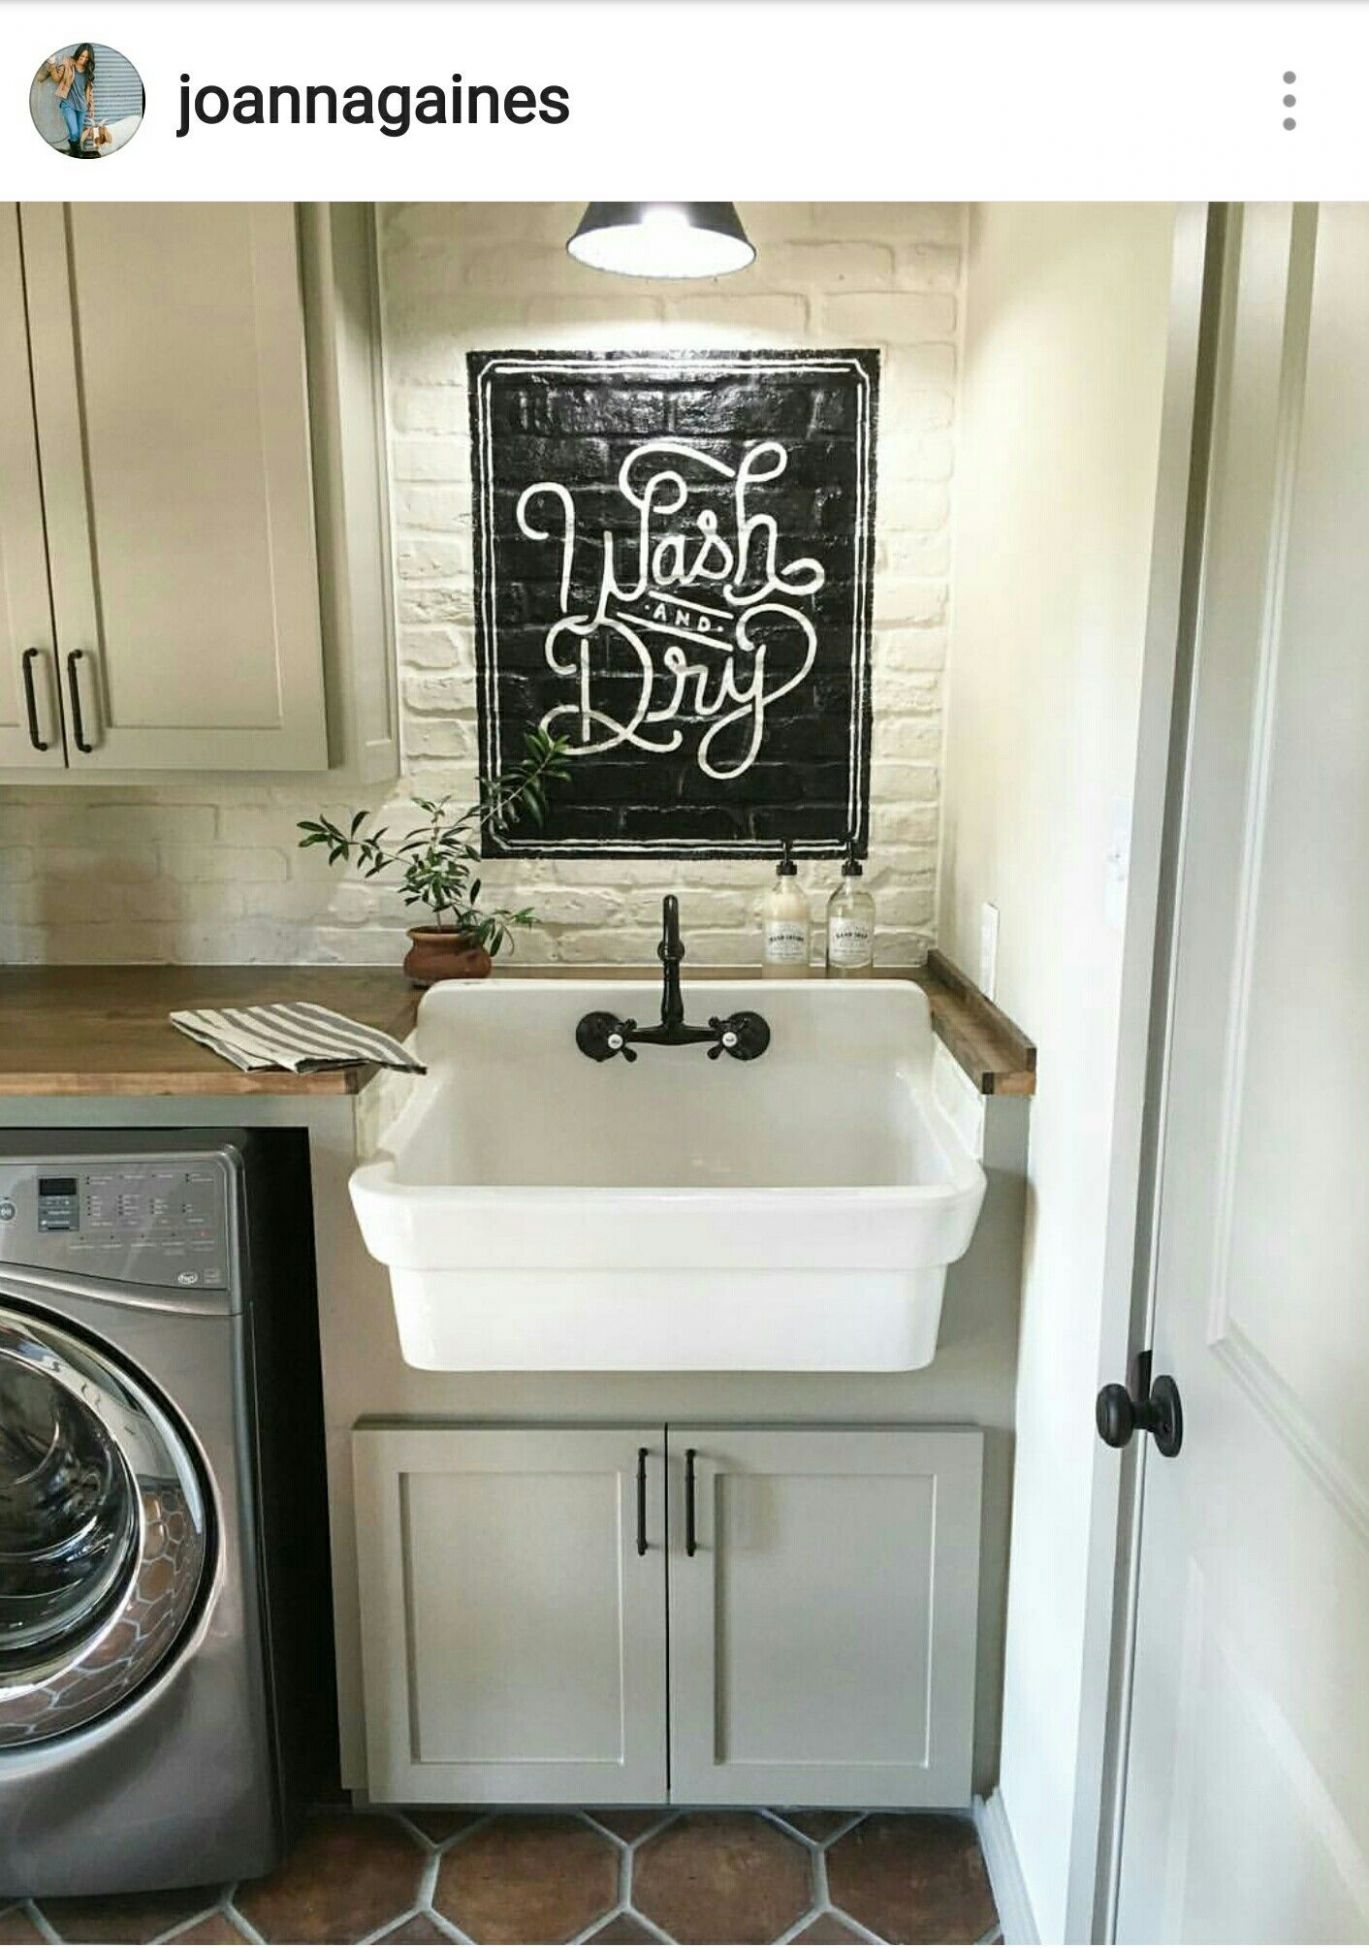 Laundry room by Joanna Gaines from Fixer Upper on HGTV | Laundry ..